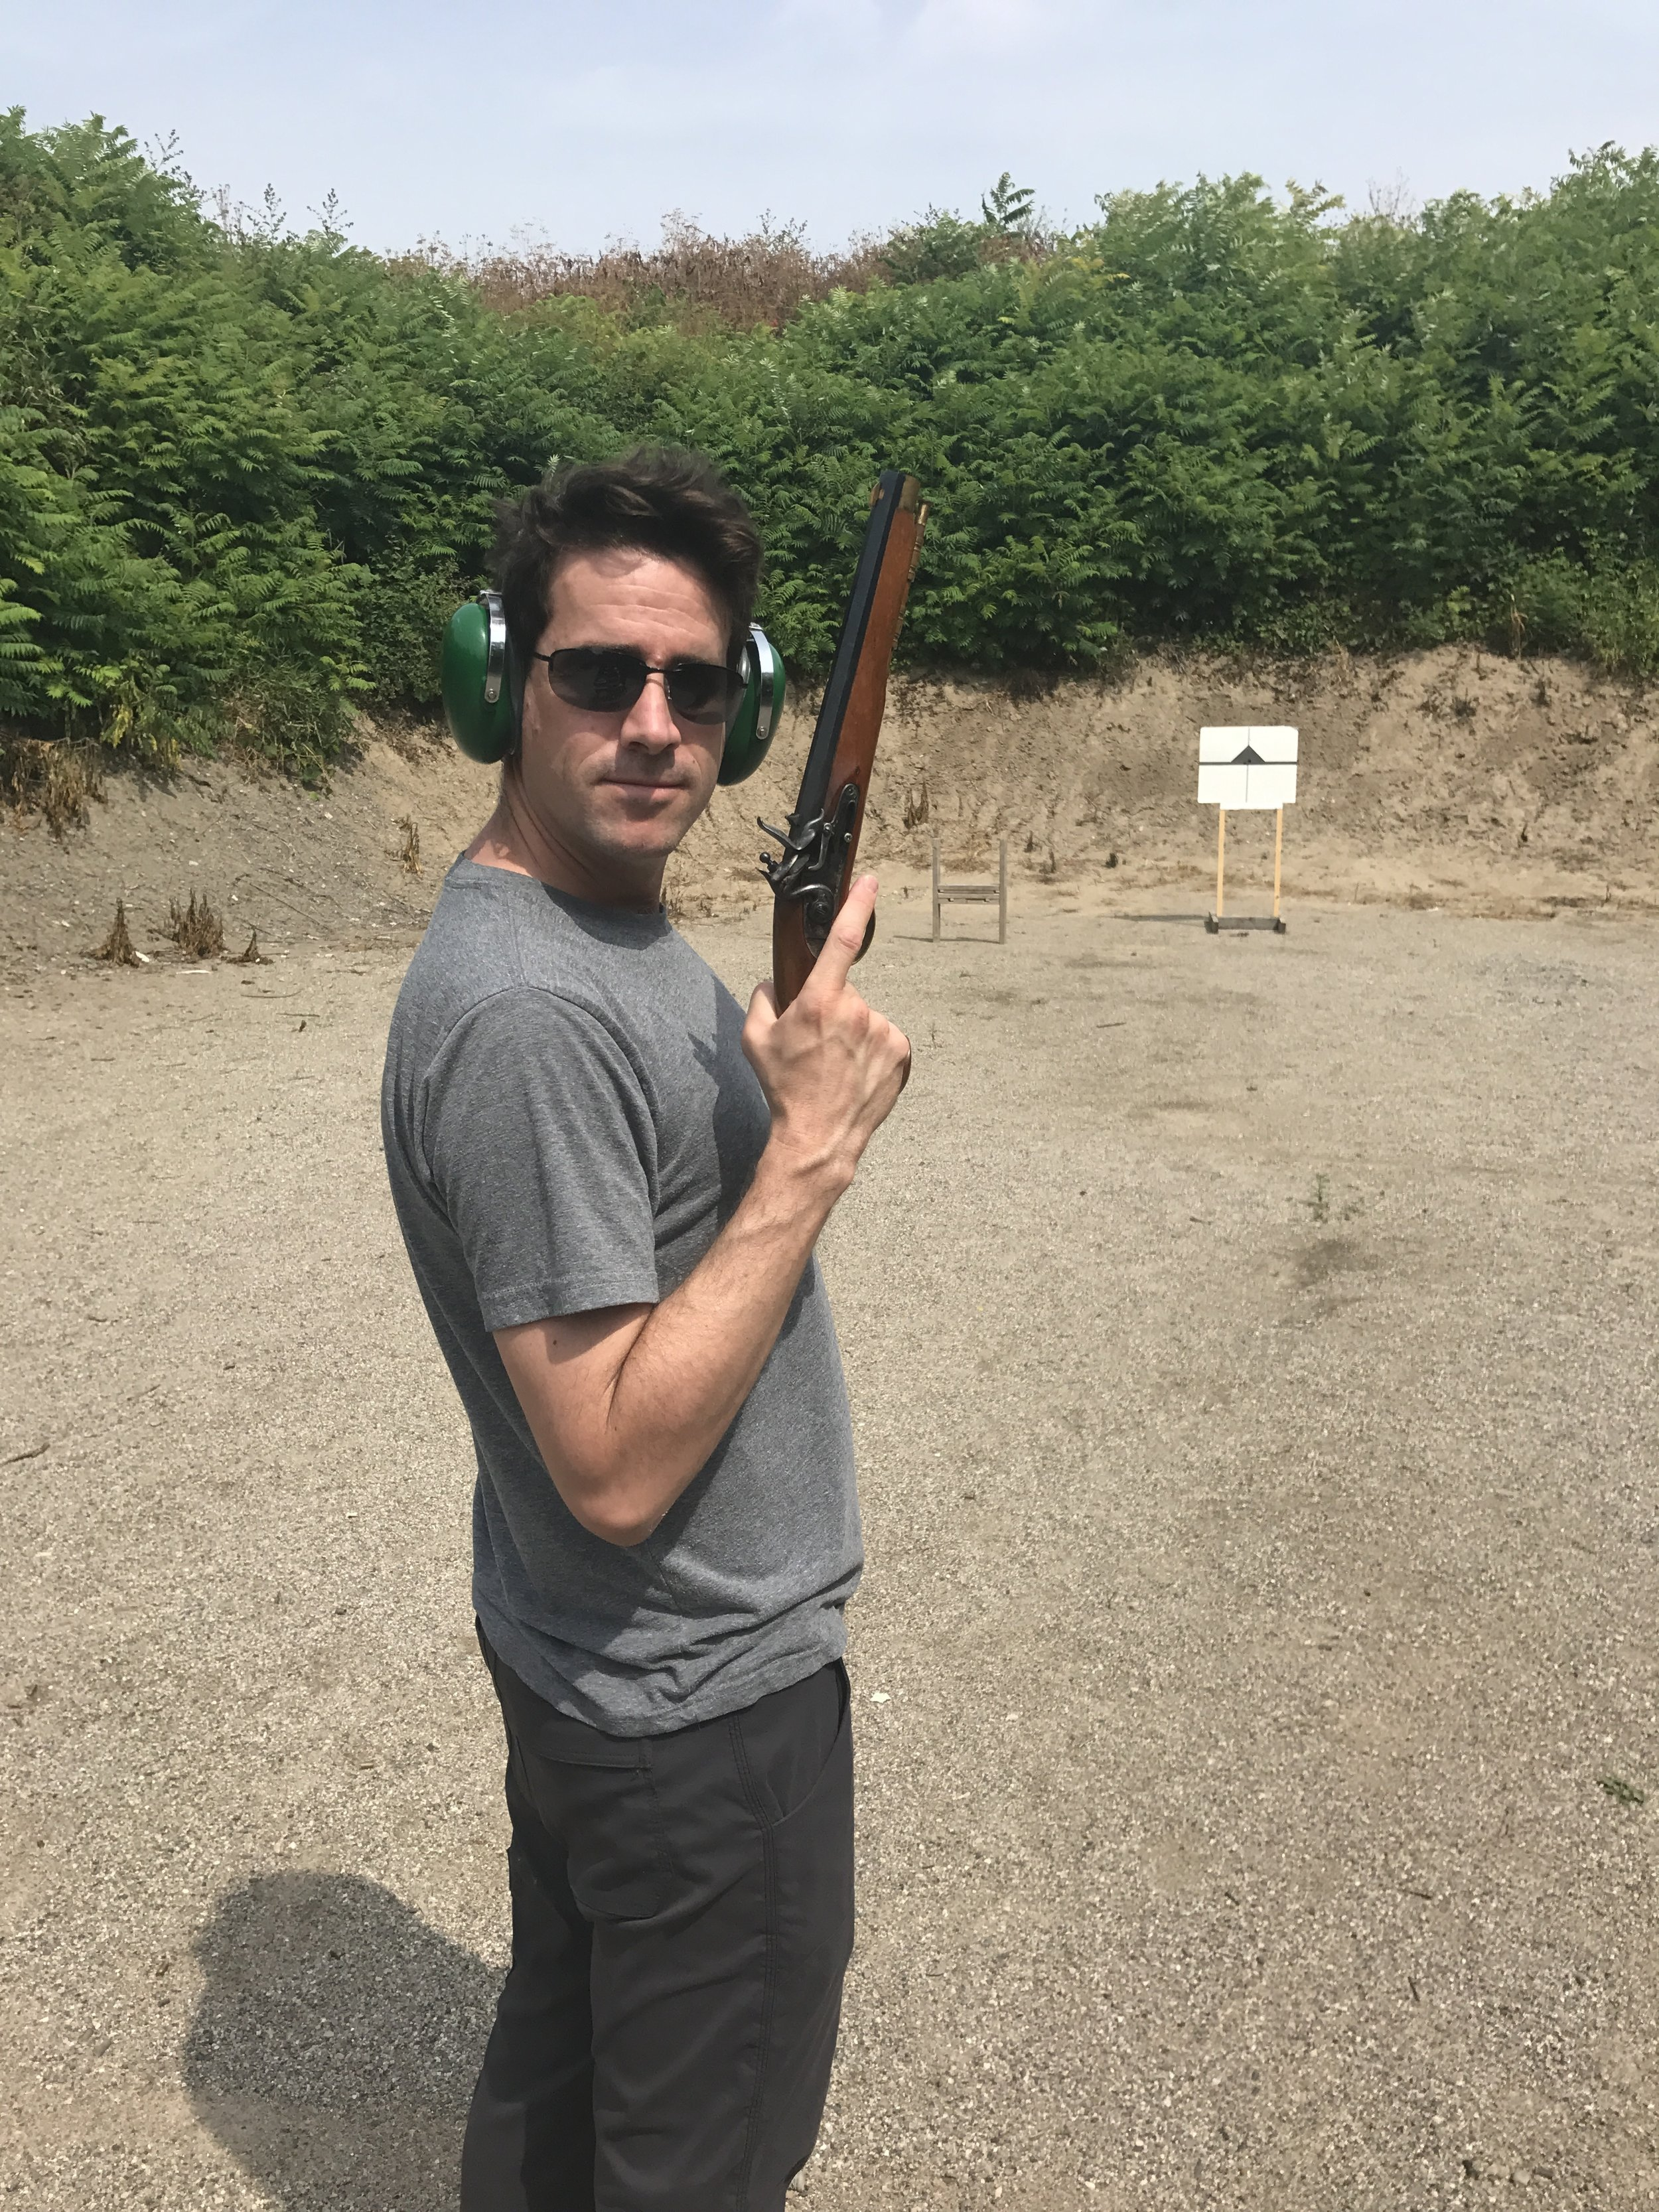 """Image of me with a flintlock pistol. Dave calls these """"hero shots"""". My sunglasses hide the terror."""